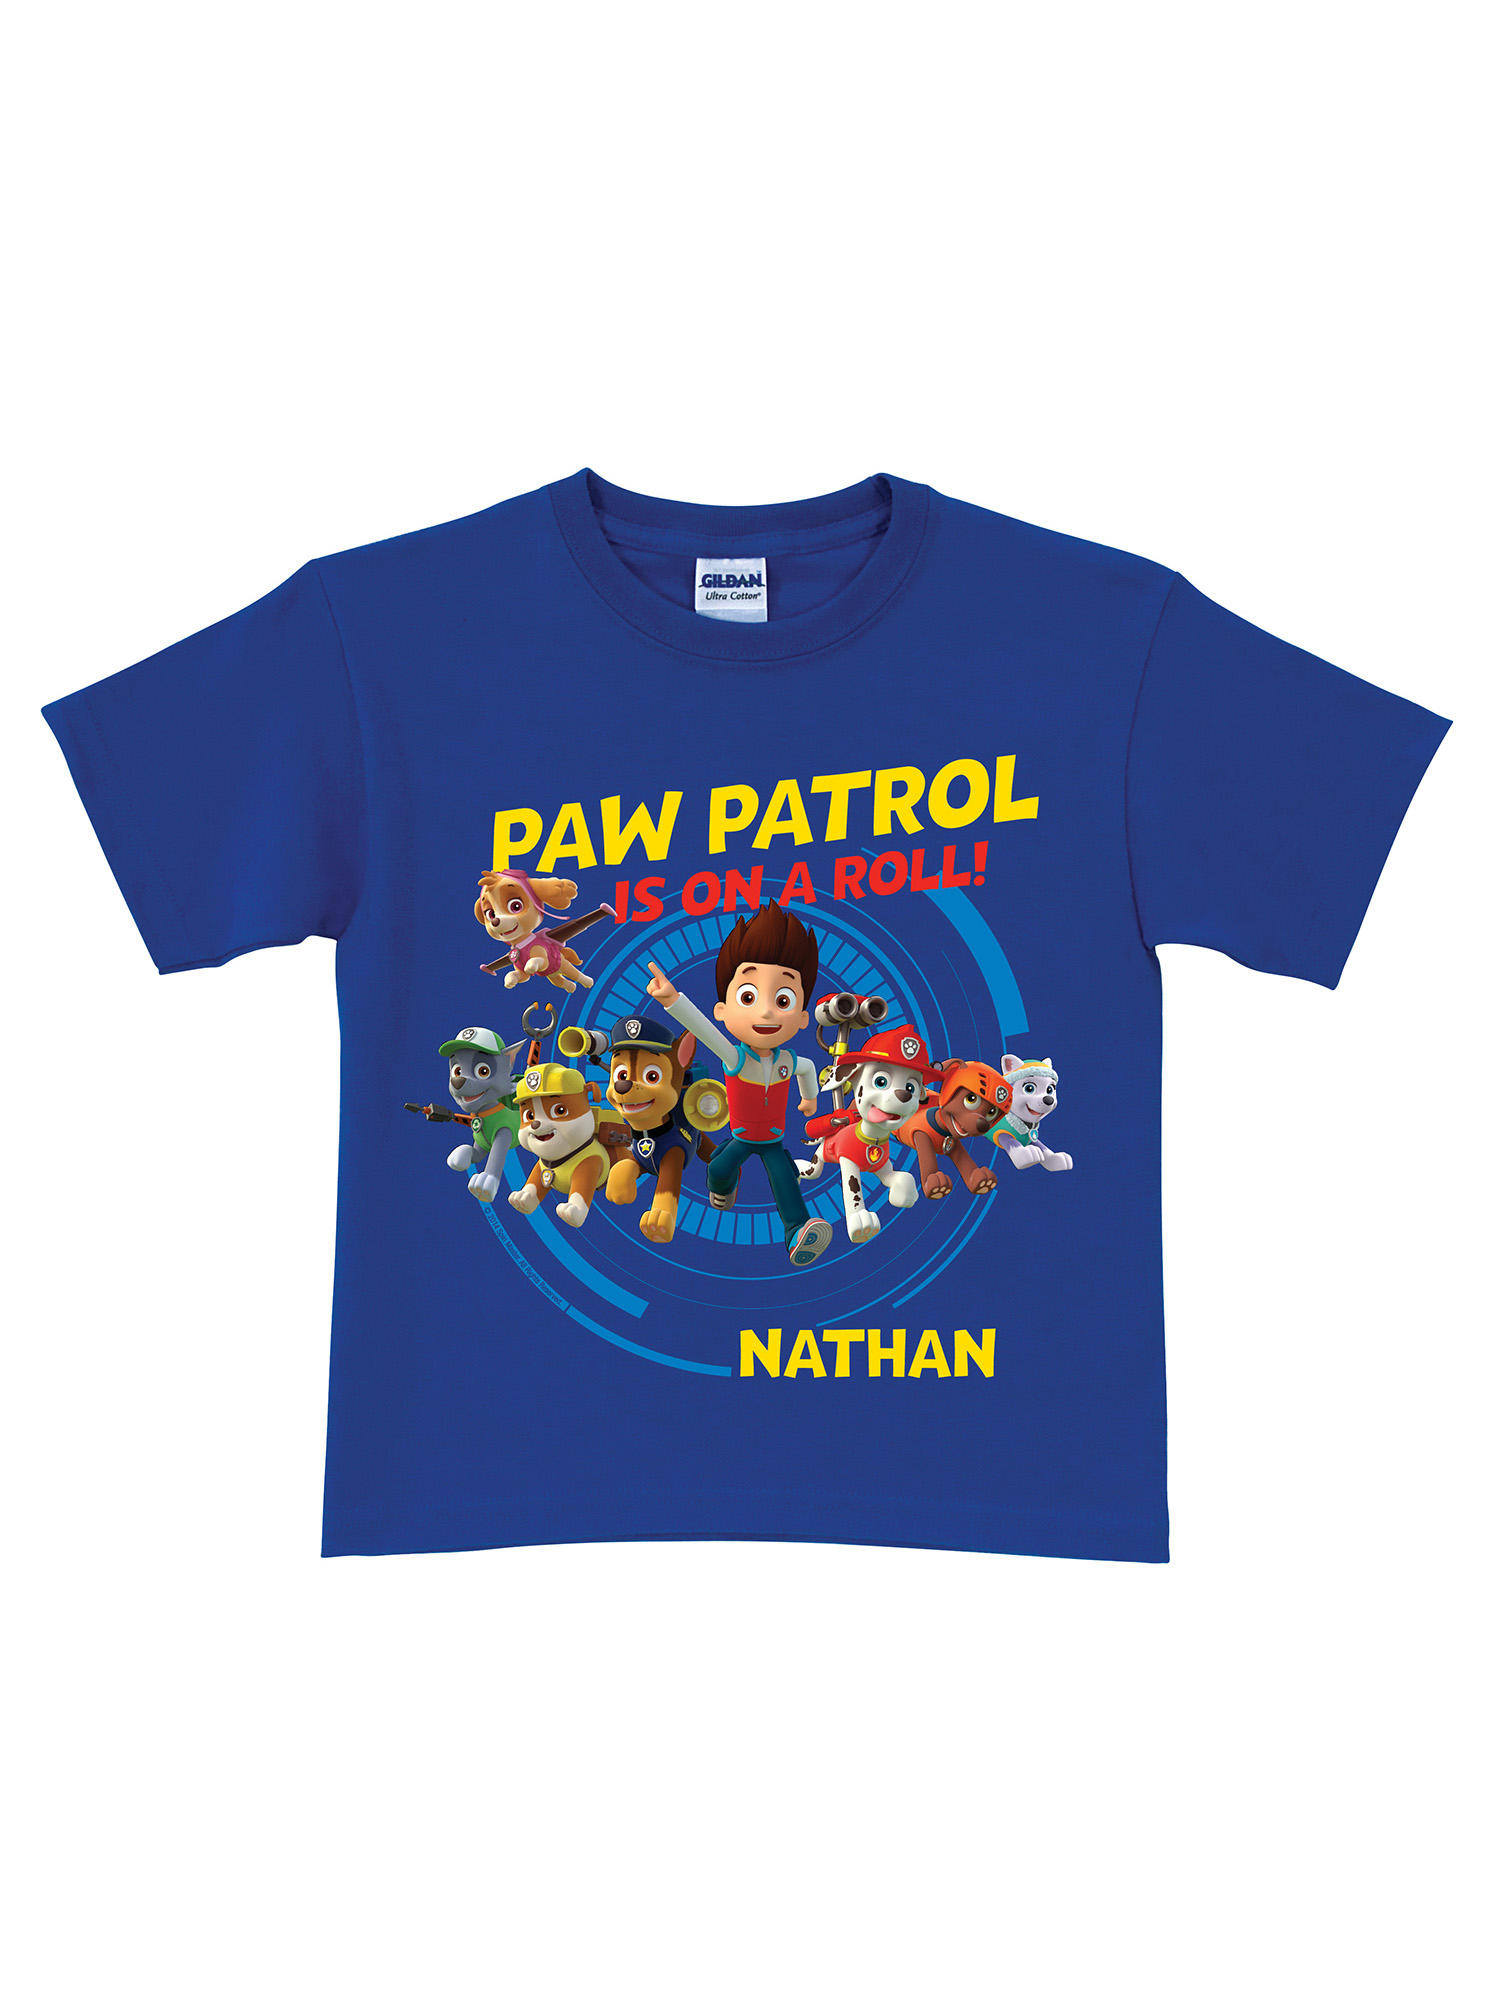 Personalized PAW Patrol Blue Toddler Boys' T-Shirt, 2T, 3T, 4T, 5/6T - On a Roll Royal